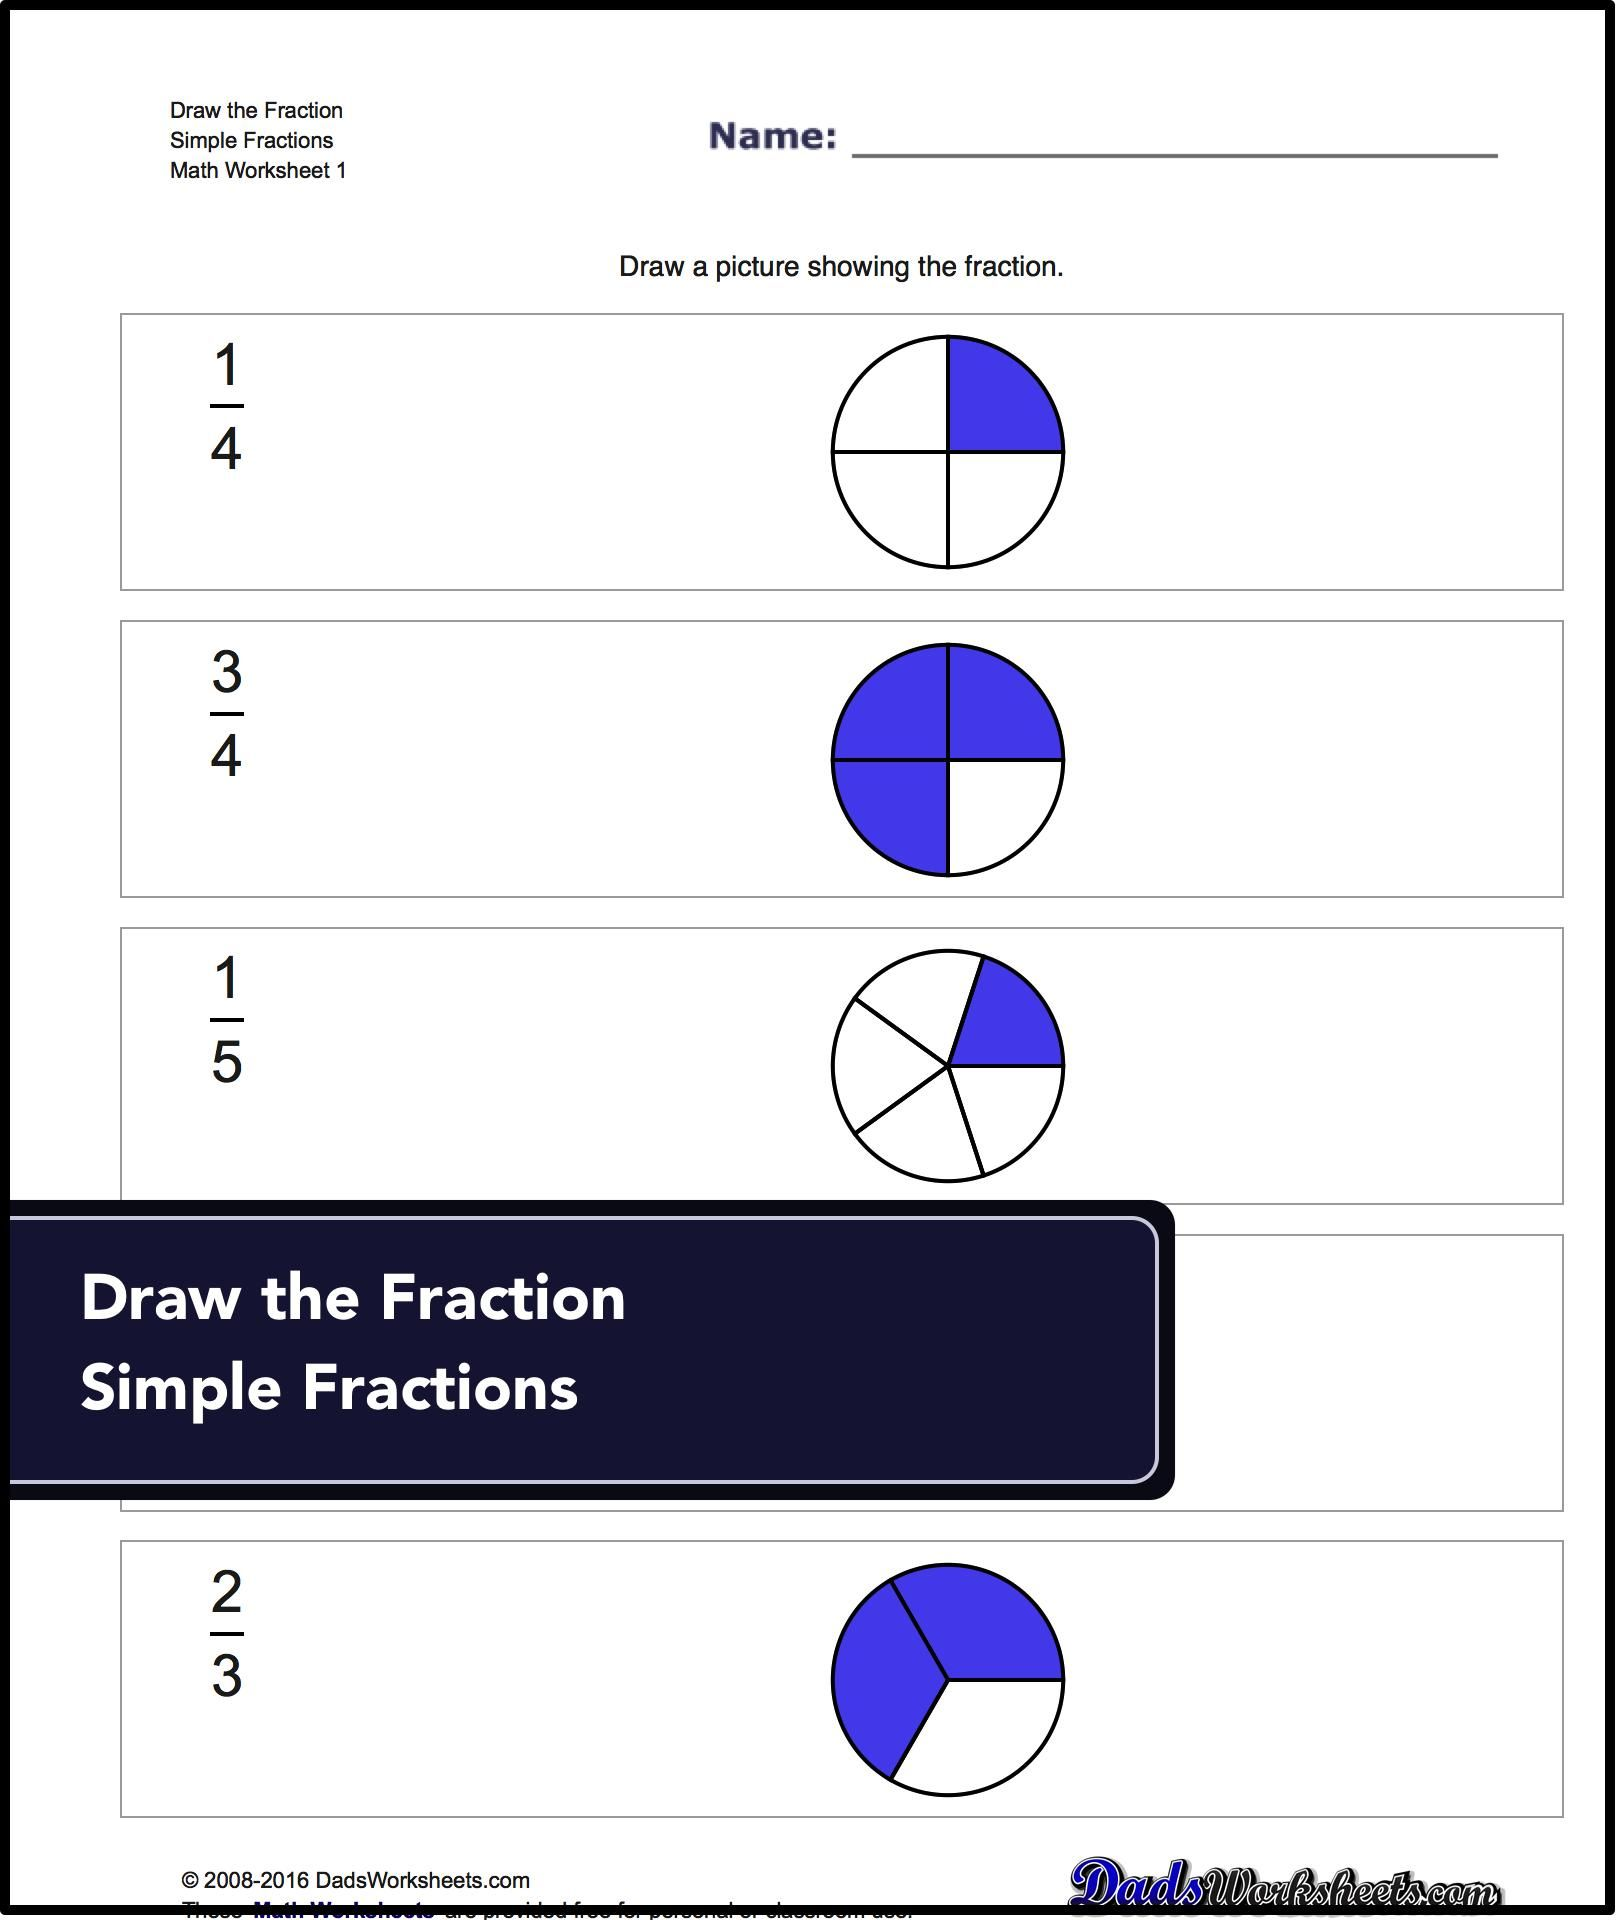 worksheet Simple Fractions graphic fractions draw simple fractions